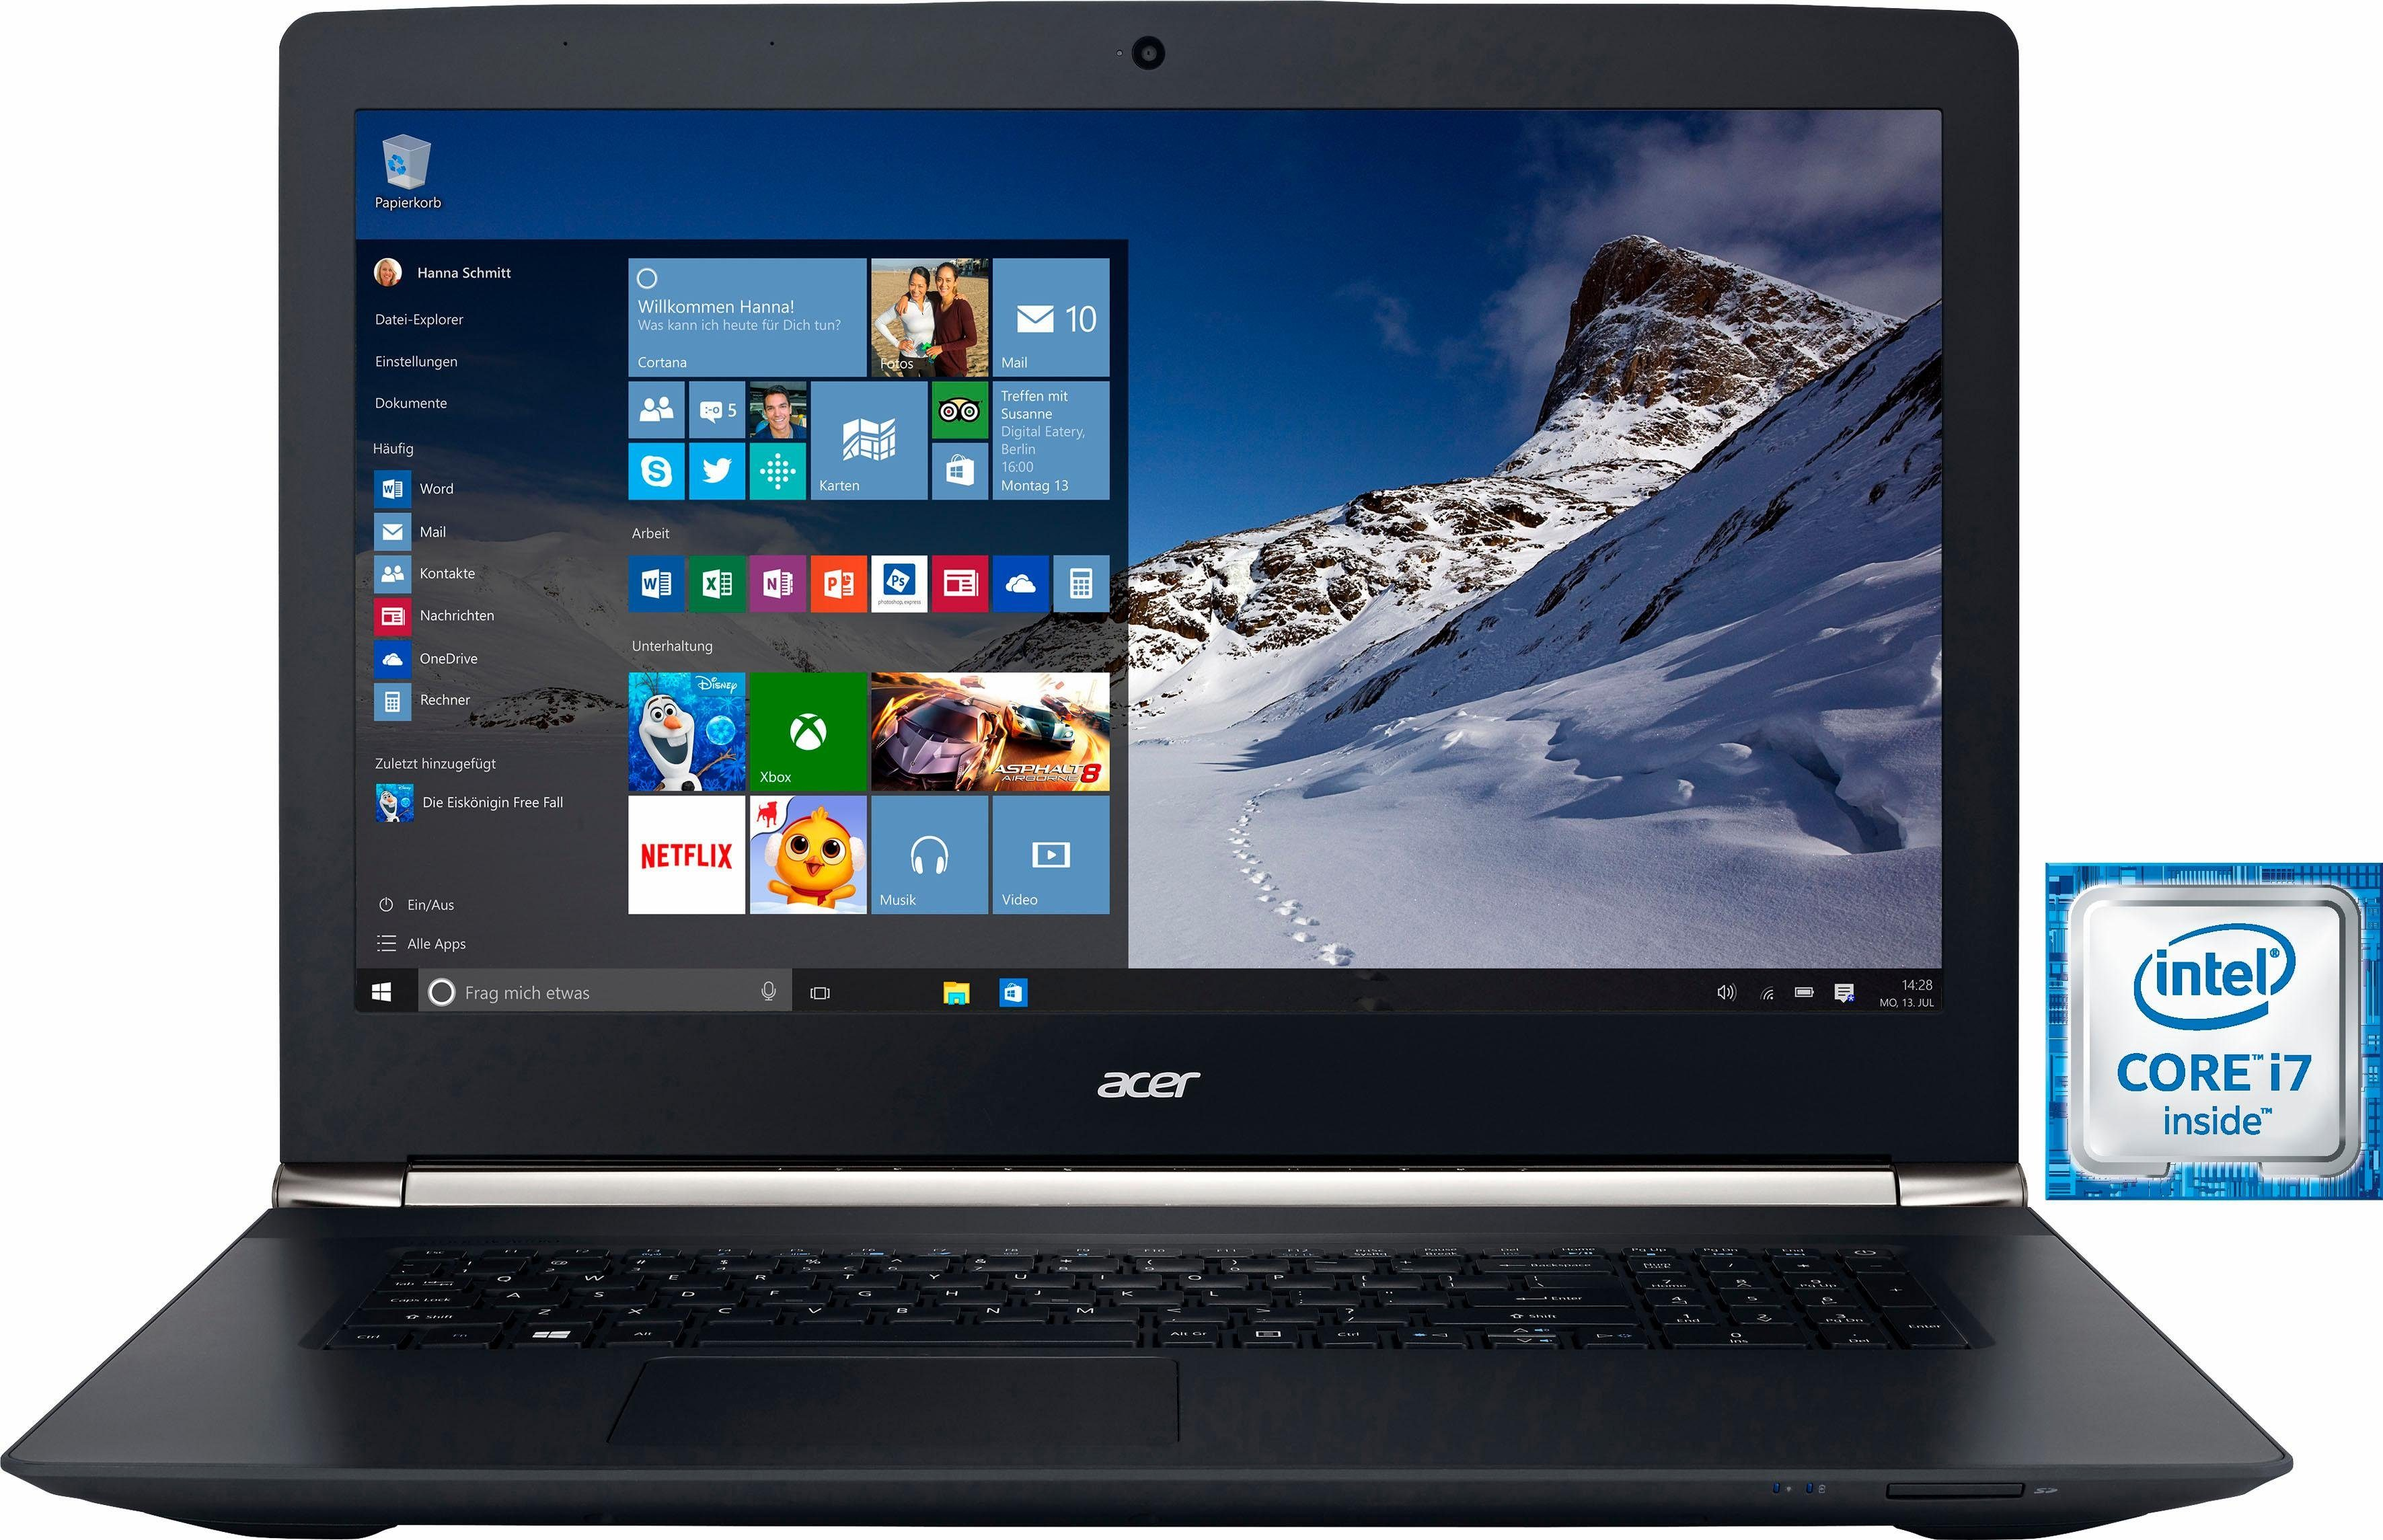 Acer Aspire VN7-792G-70RV Notebook, Intel® Core™ i7, 43,9 cm (17,3 Zoll), 1256 GB Speicher